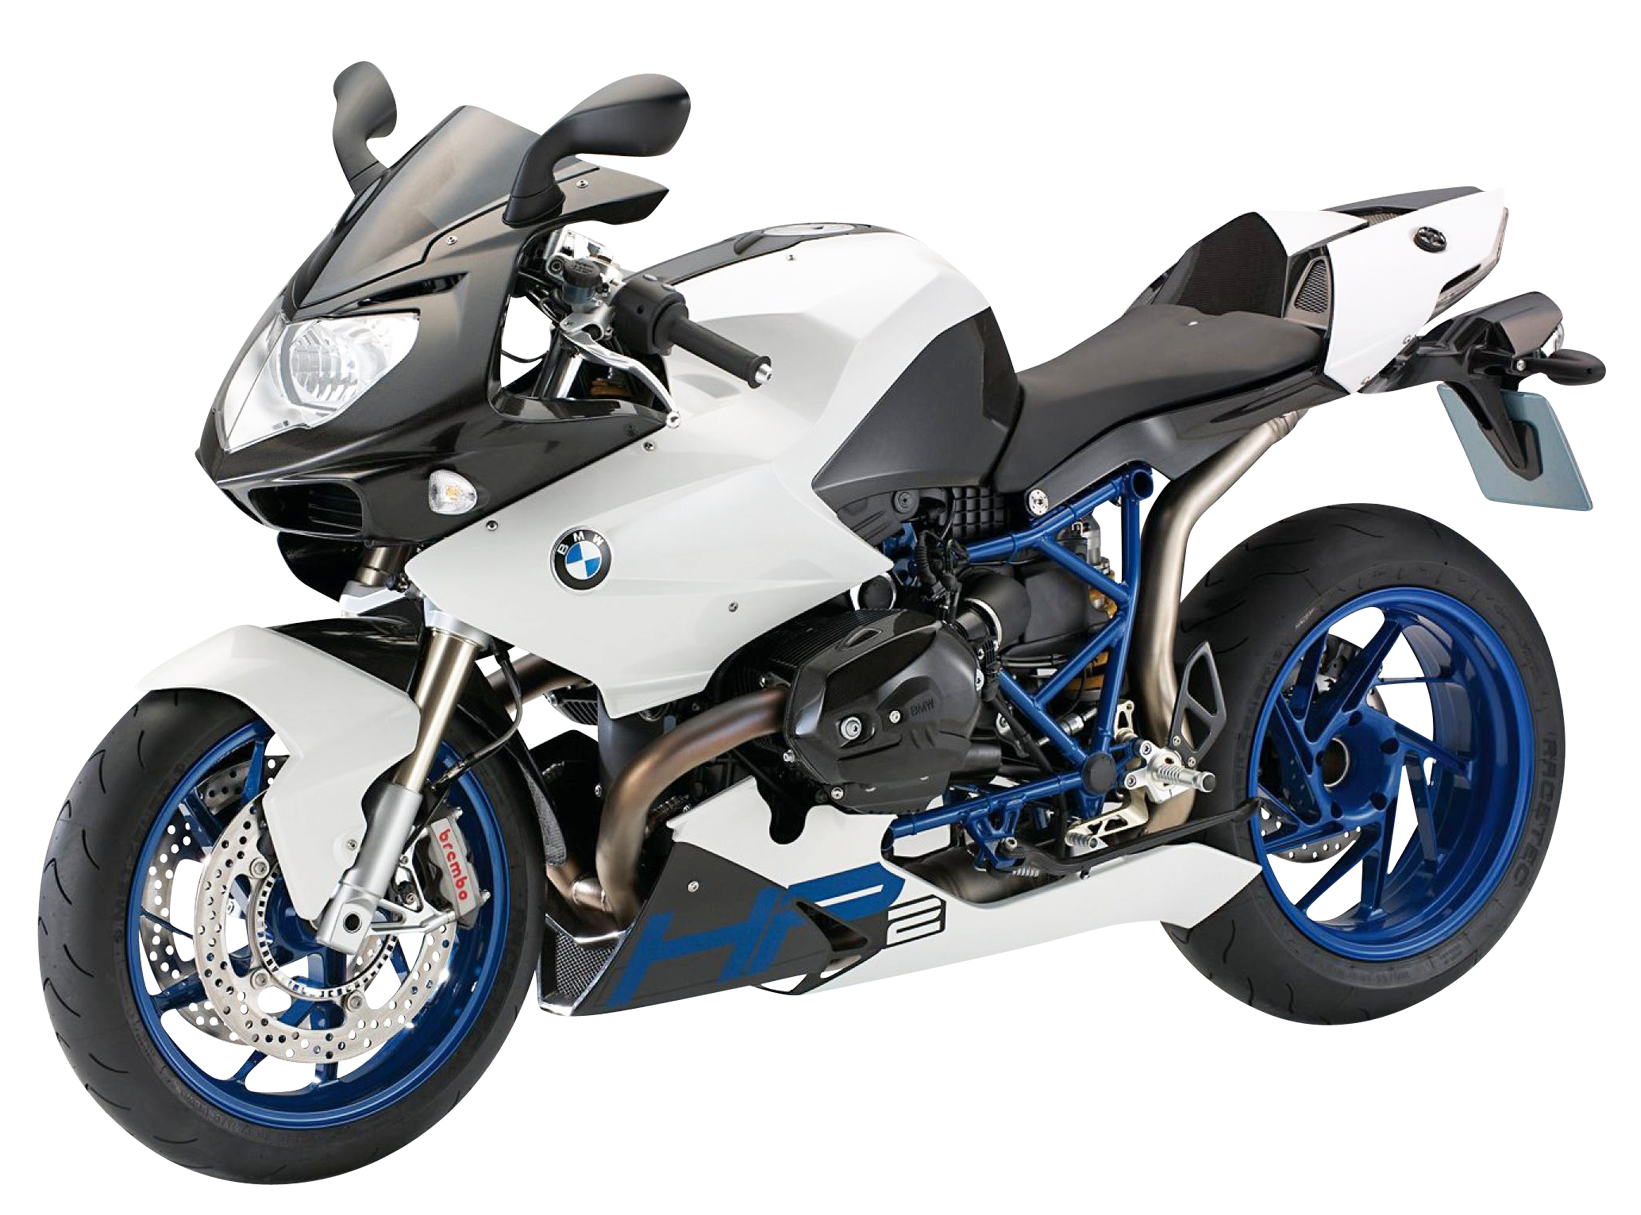 BMW F800GS Adventure PNG Image